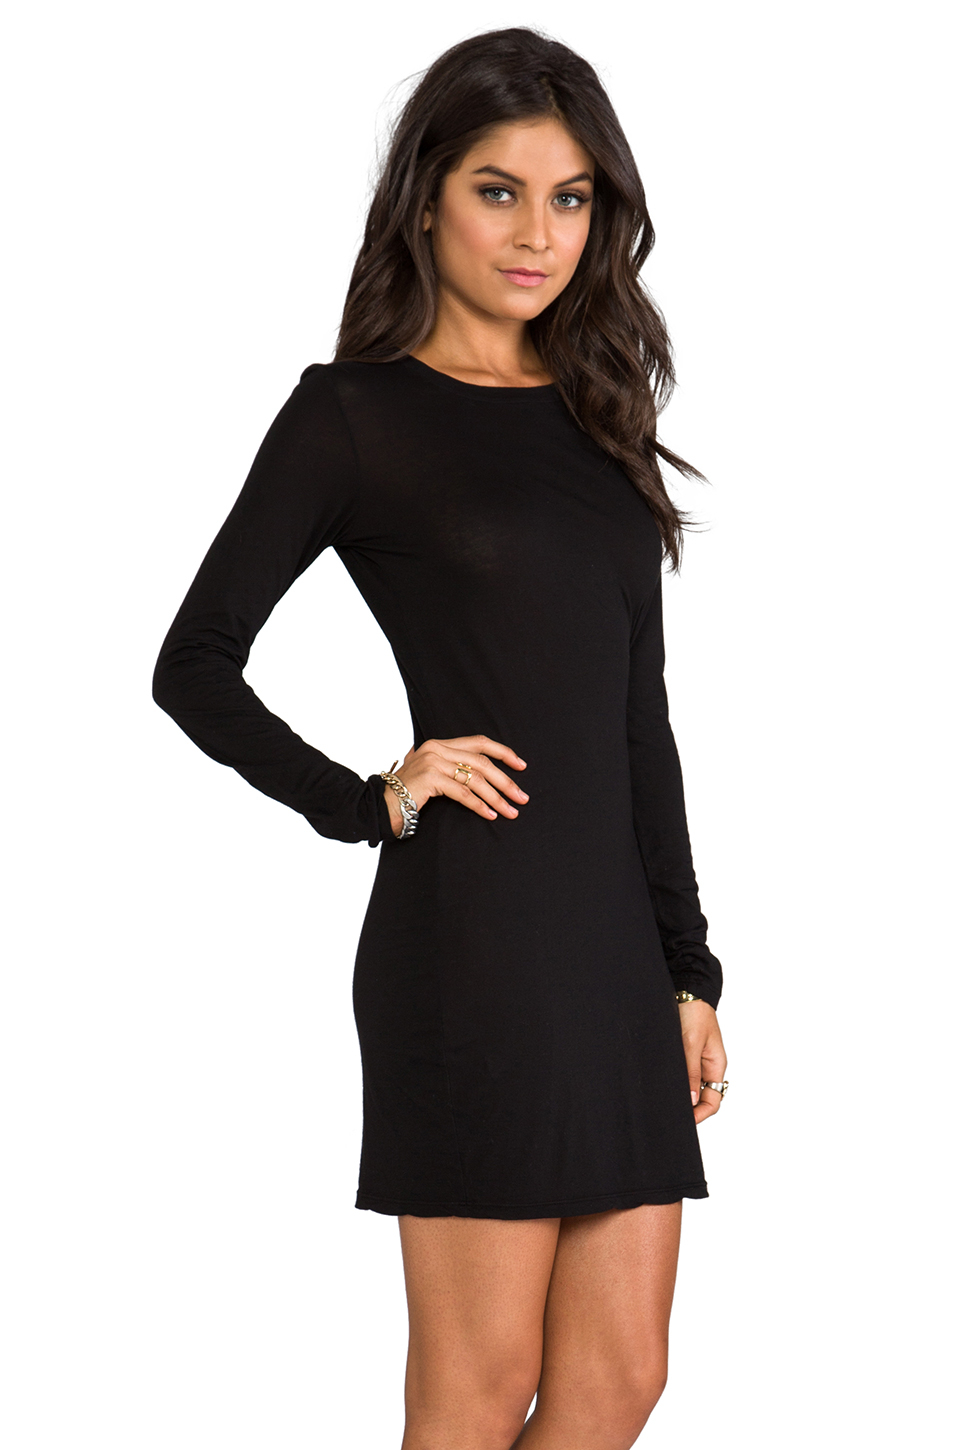 Lyst Daftbird Long Sleeve Mini Dress In Black In Black